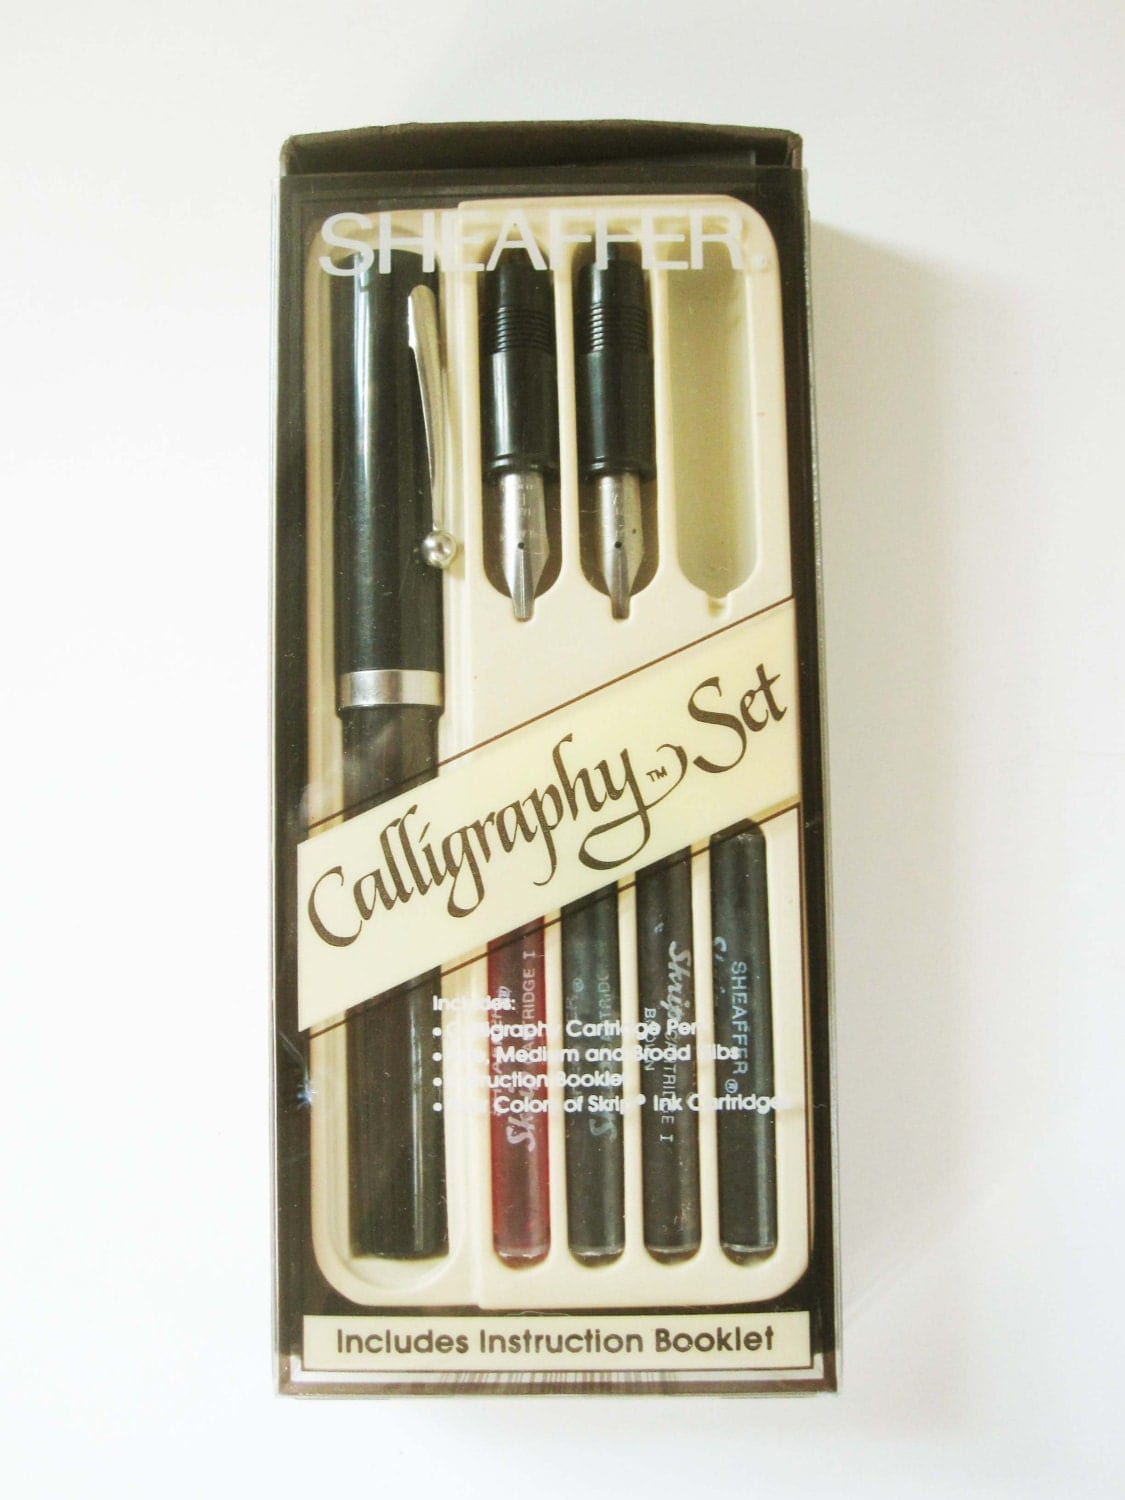 A Small Sheaffer Eaton Calligraphy Set One Pen With Three